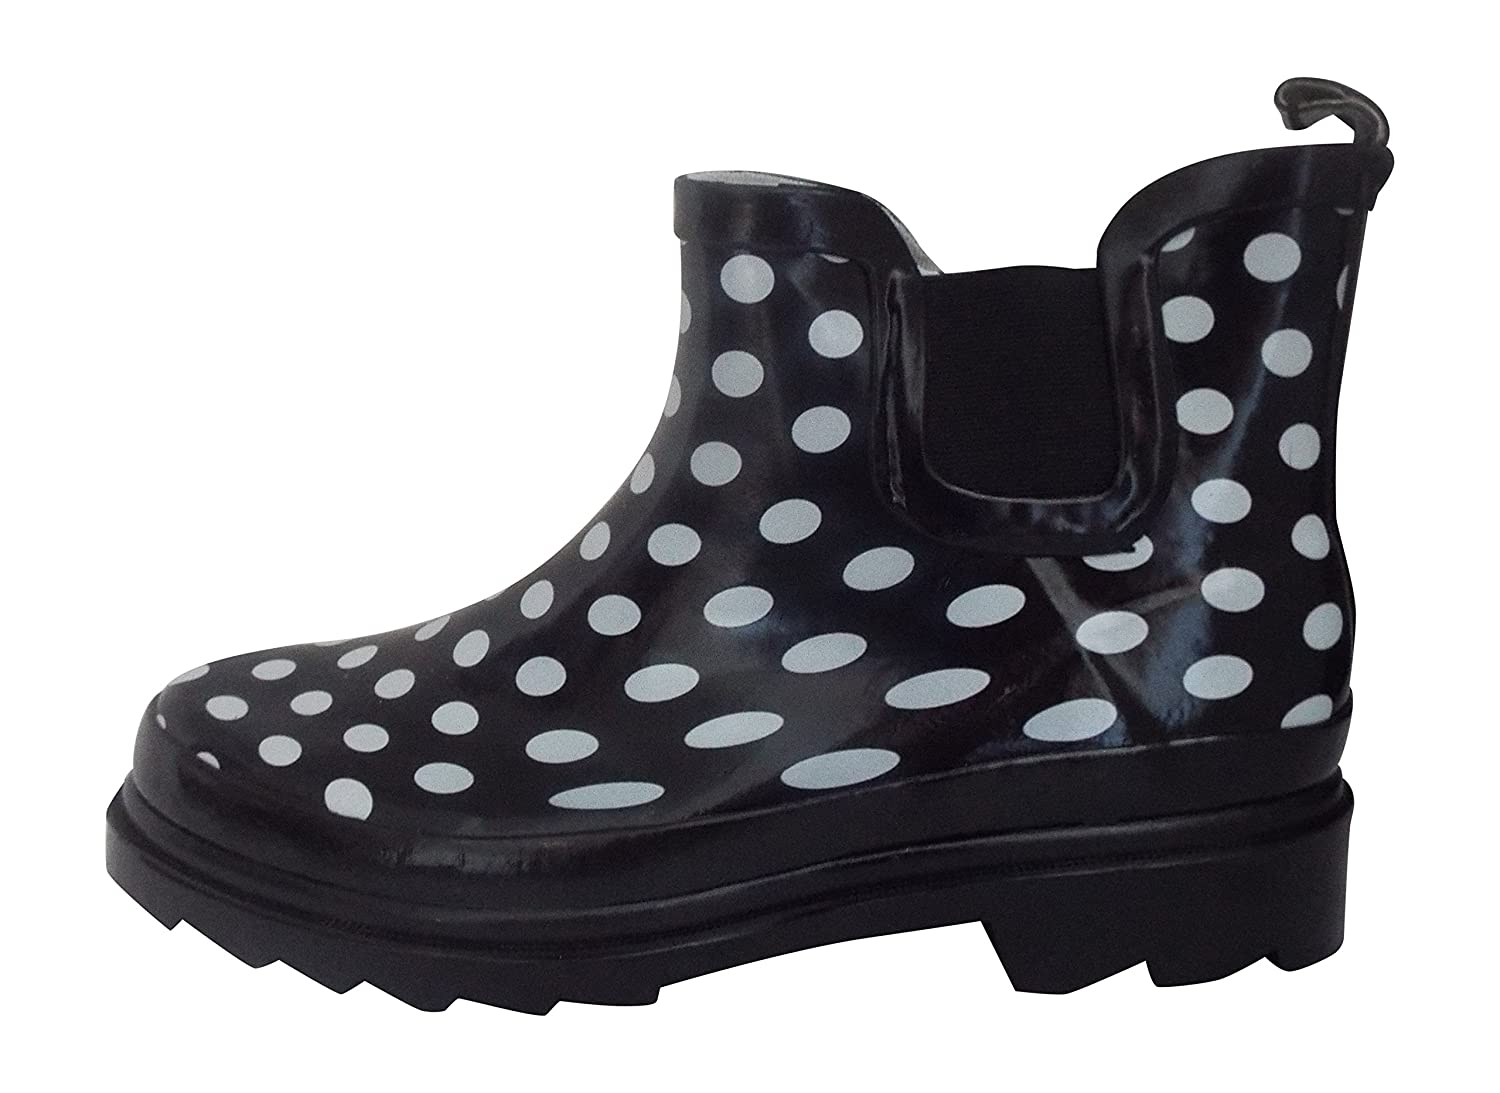 Women's Short Ankle Rubber Rain Boots Multiple Styles Available B00ZSNUIY2 8 B(M) US|Polka Dot